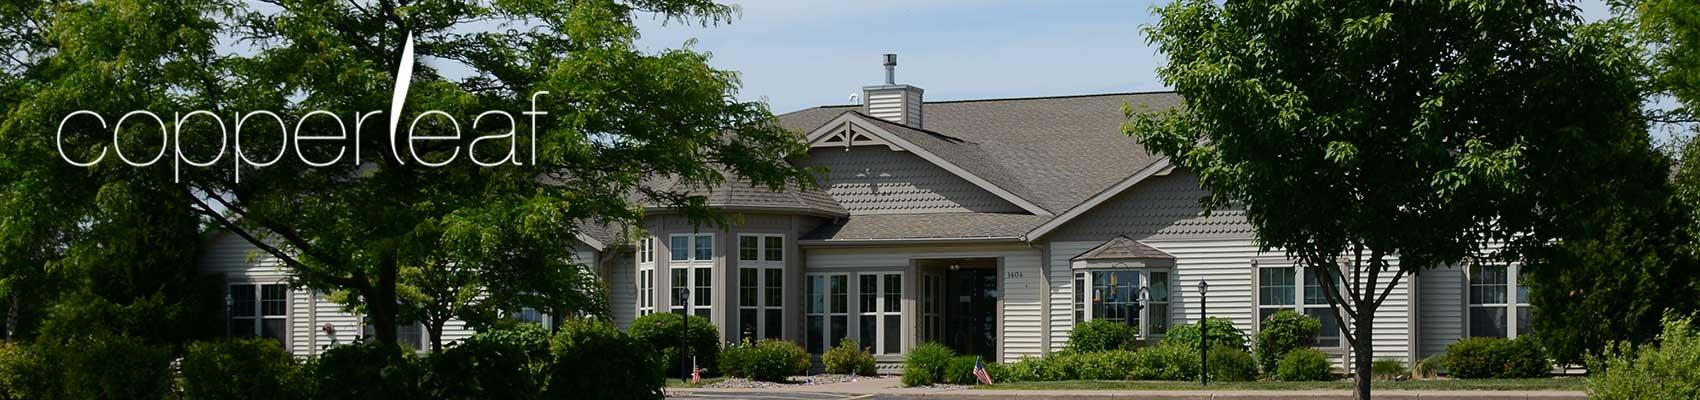 assisted living facilities in Knowlton Wisconsin Marathon County